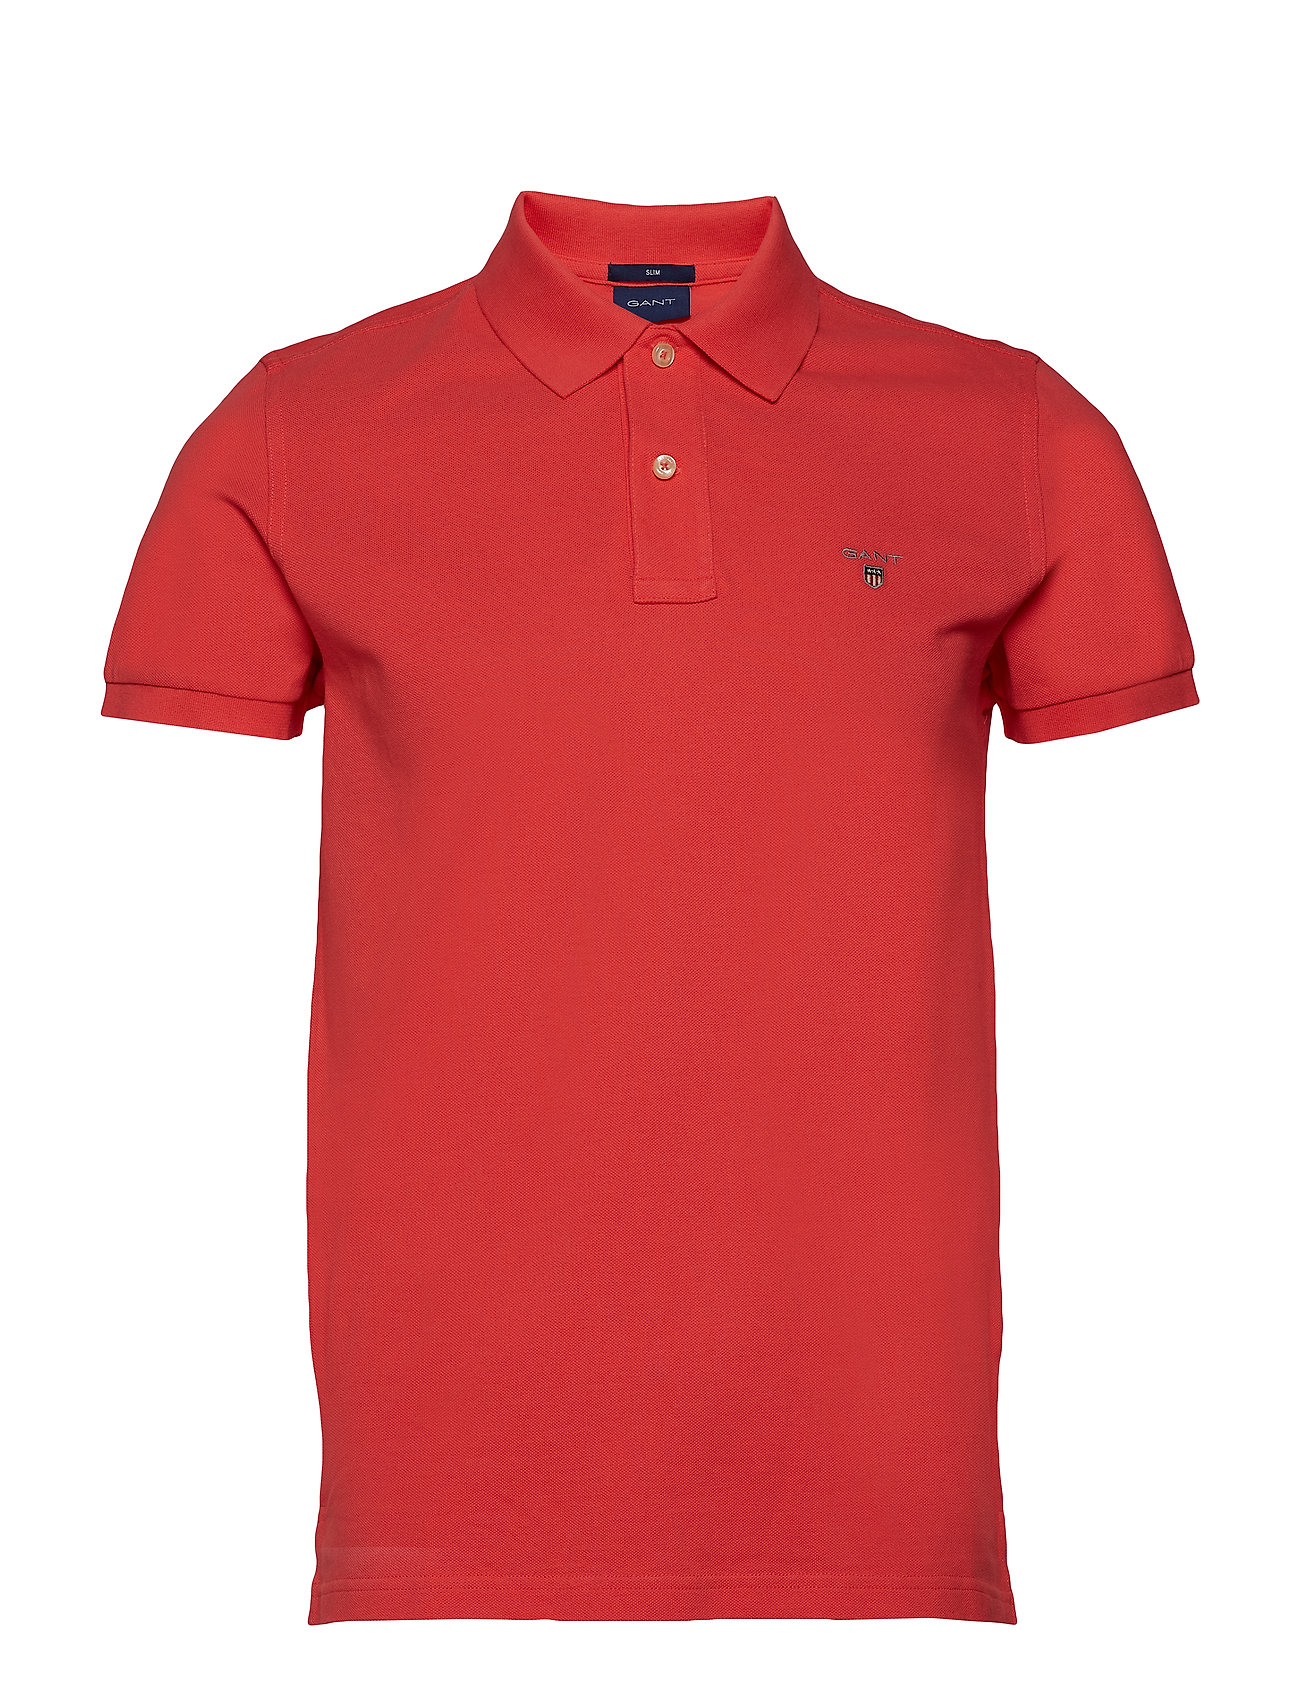 GANT THE ORIGINAL FITTED PIQUE SS RUGGER